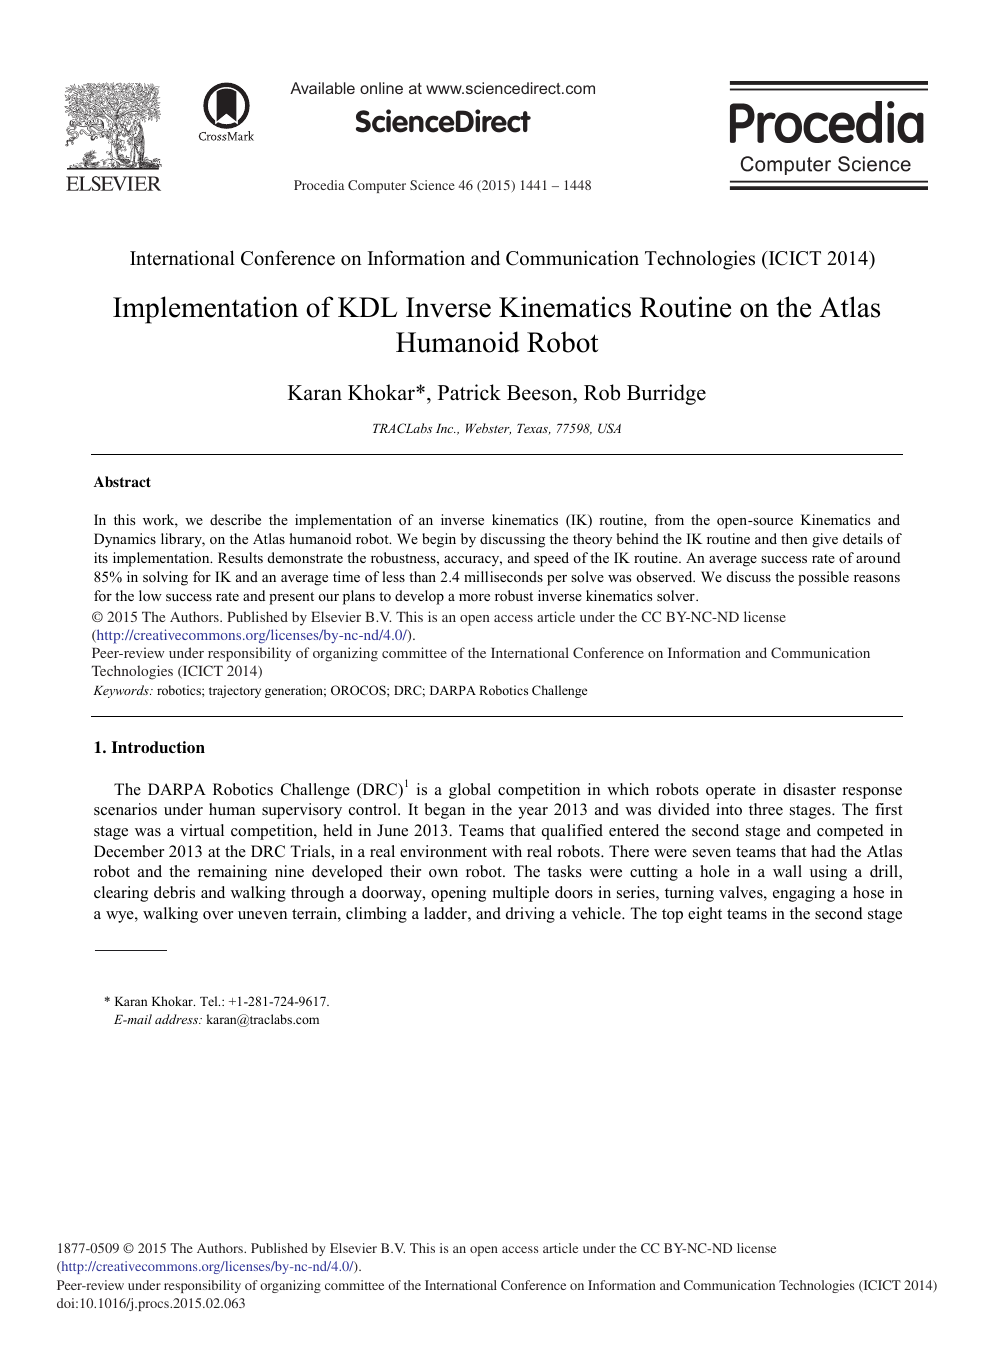 Implementation of KDL Inverse Kinematics Routine on the